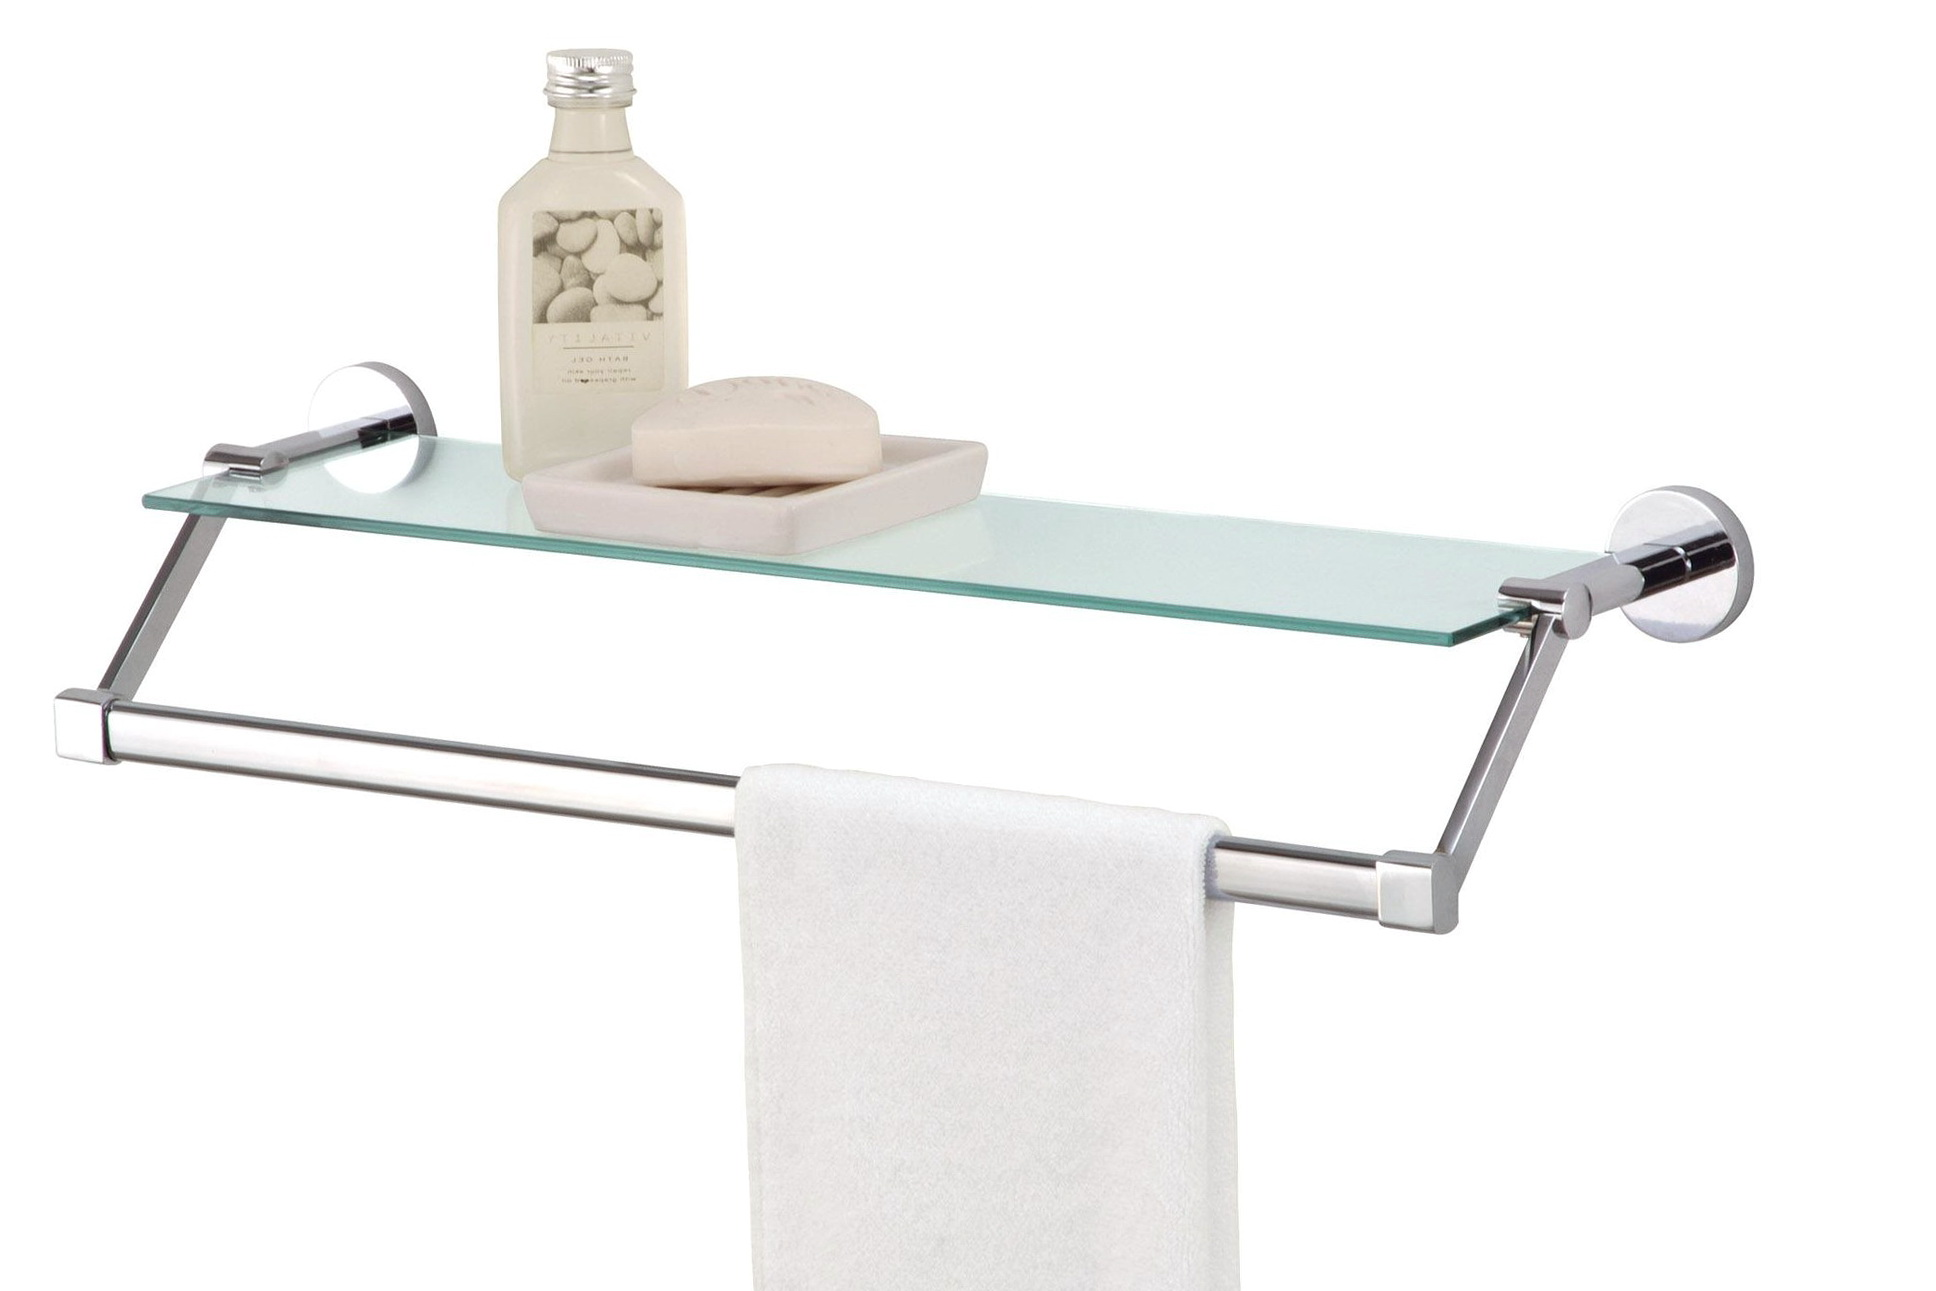 Bathroom Wall Shelves With Towel Bar